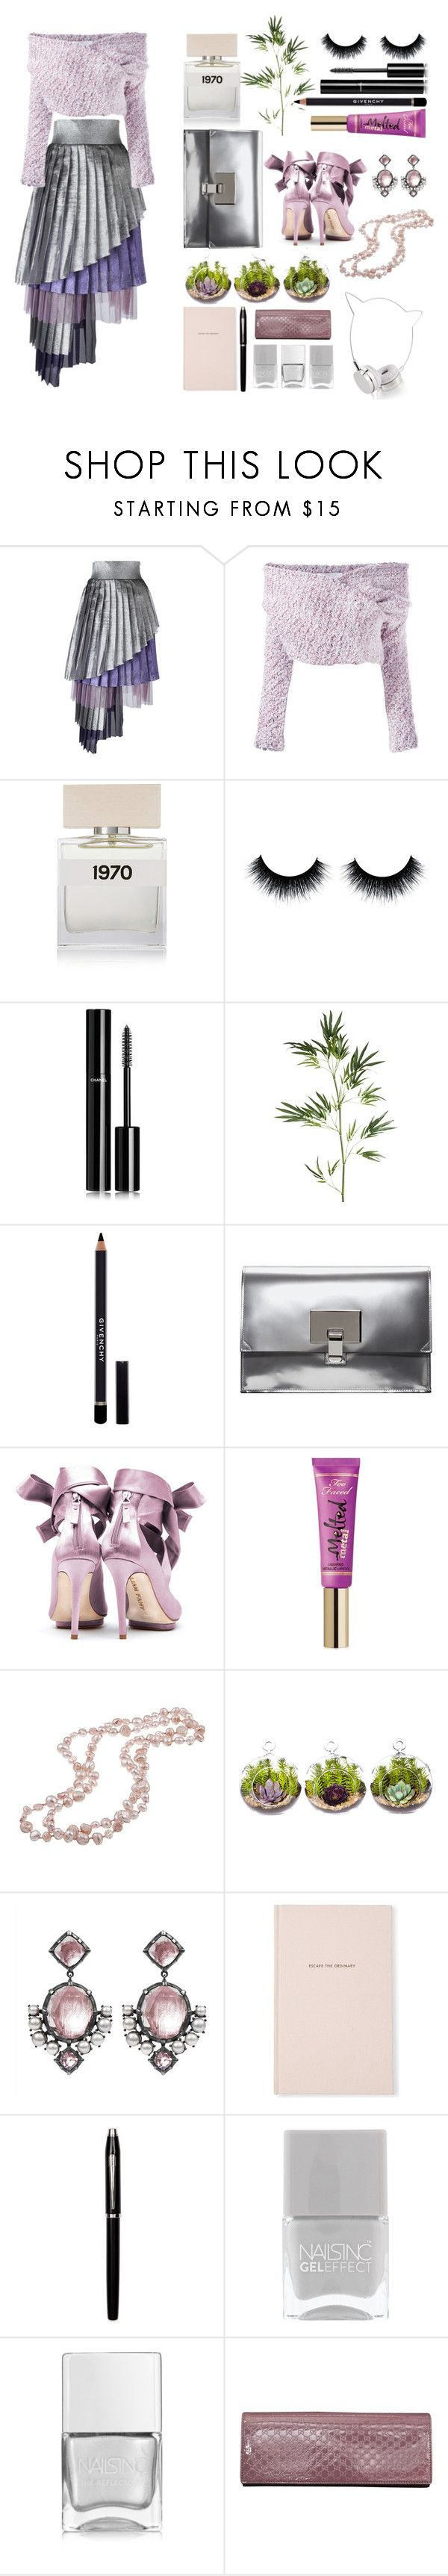 """""""daizy shely"""" by art-gives-me-life ❤ liked on Polyvore featuring Daizy Shely, Bella Freud, Chanel, Pier 1 Imports, Givenchy, Proenza Schouler, Liam Fahy, Too Faced Cosmetics, DaVonna and Larkspur & Hawk"""